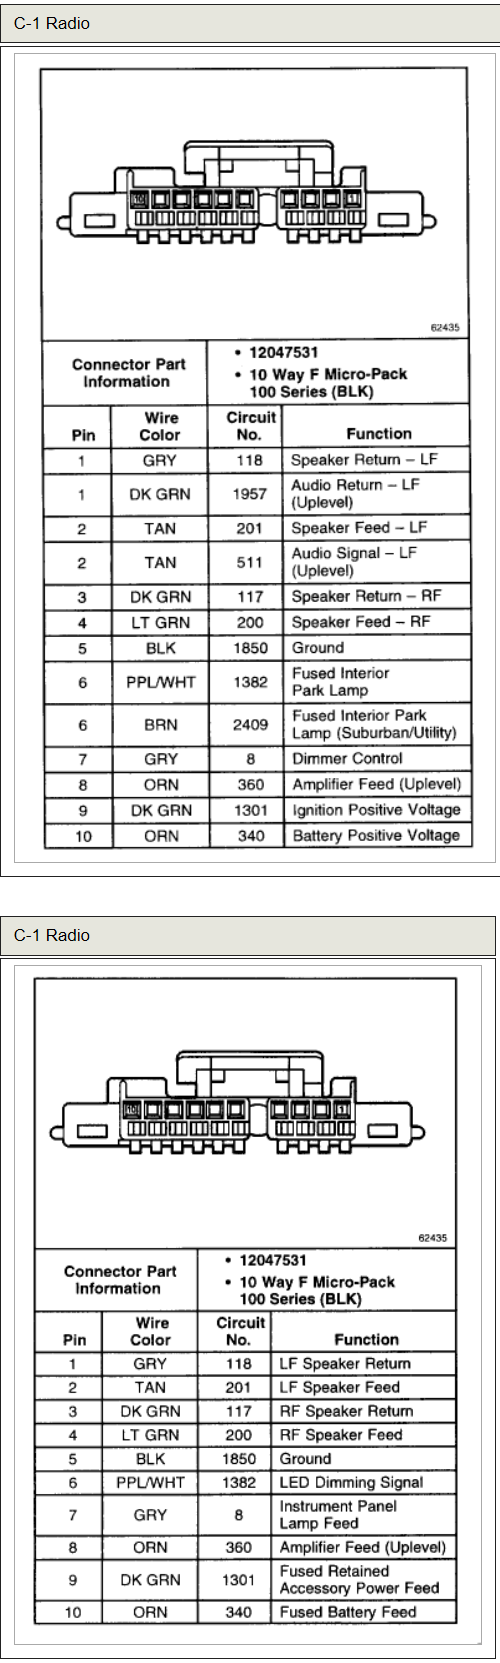 Chevrolet Tahoe LS 2000 stereo wiring connector 2 chevrolet car radio stereo audio wiring diagram autoradio 2002 chevy venture radio wiring diagram at readyjetset.co